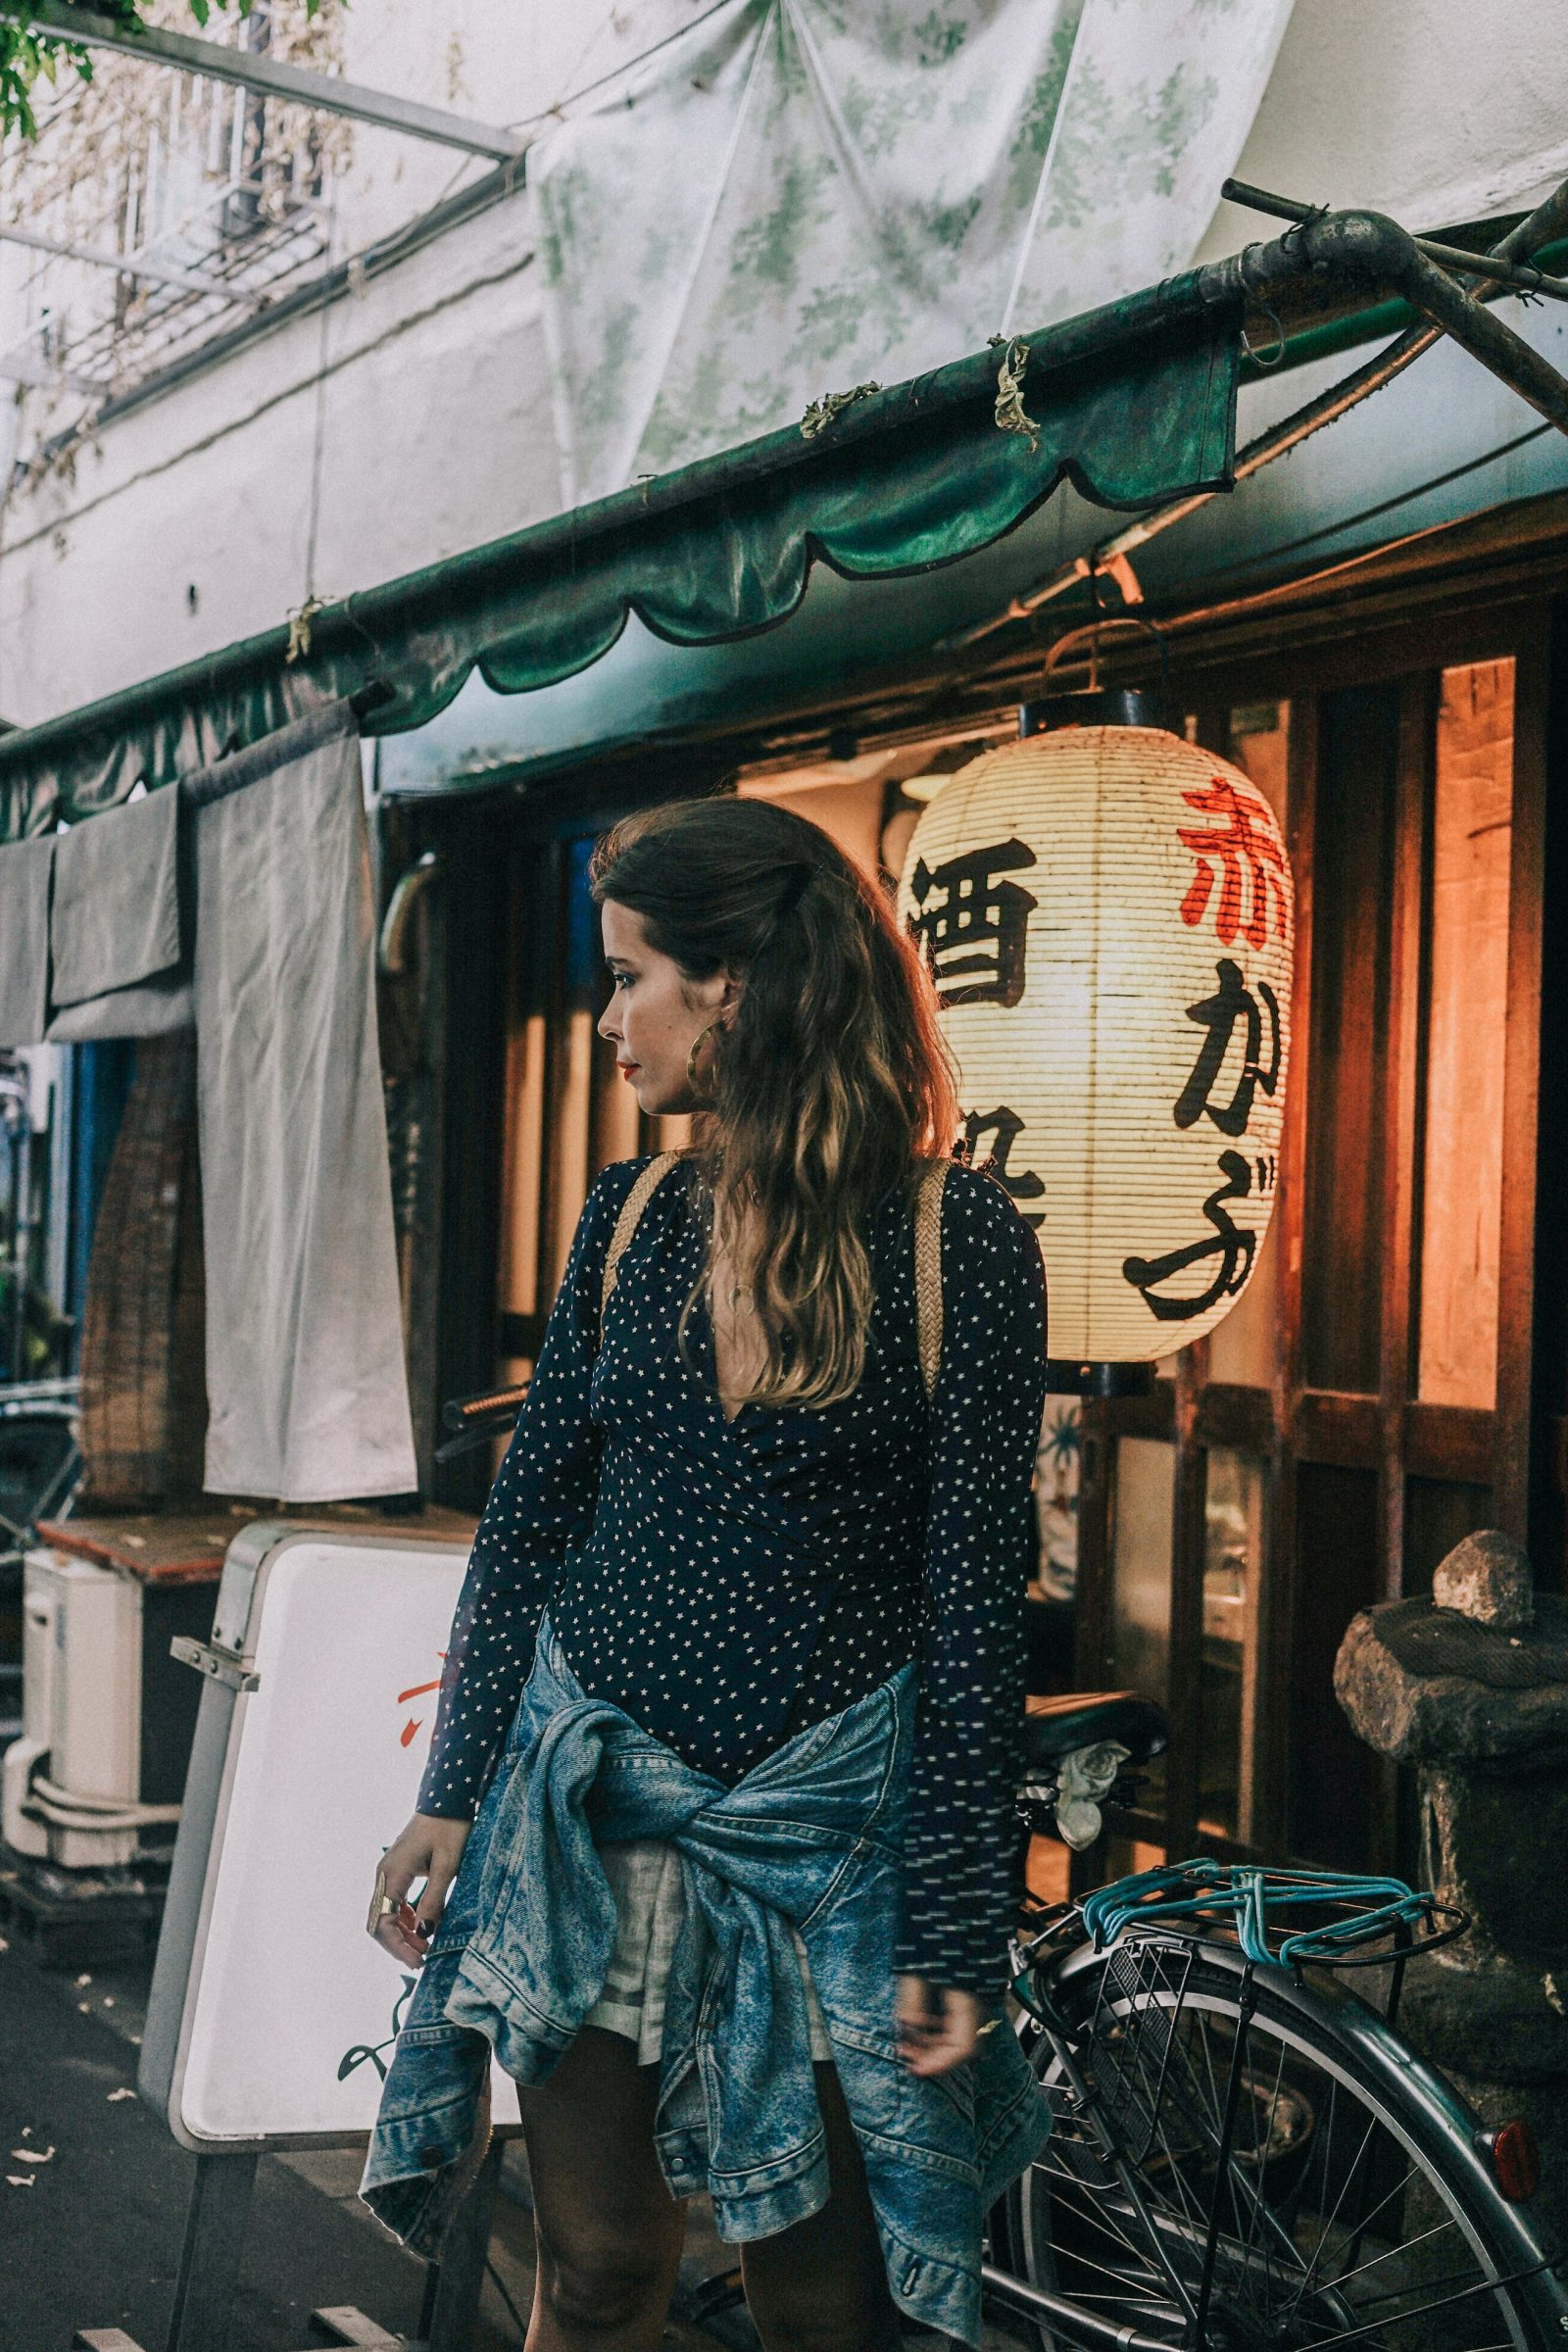 Tokyo_Travel_Guide-Outfit-Collage_Vintage-Street_Style-Reformation_Shorts-Realisation_Par_Stars_Blouse-Sneakers-Flea_Market_Backpack-101